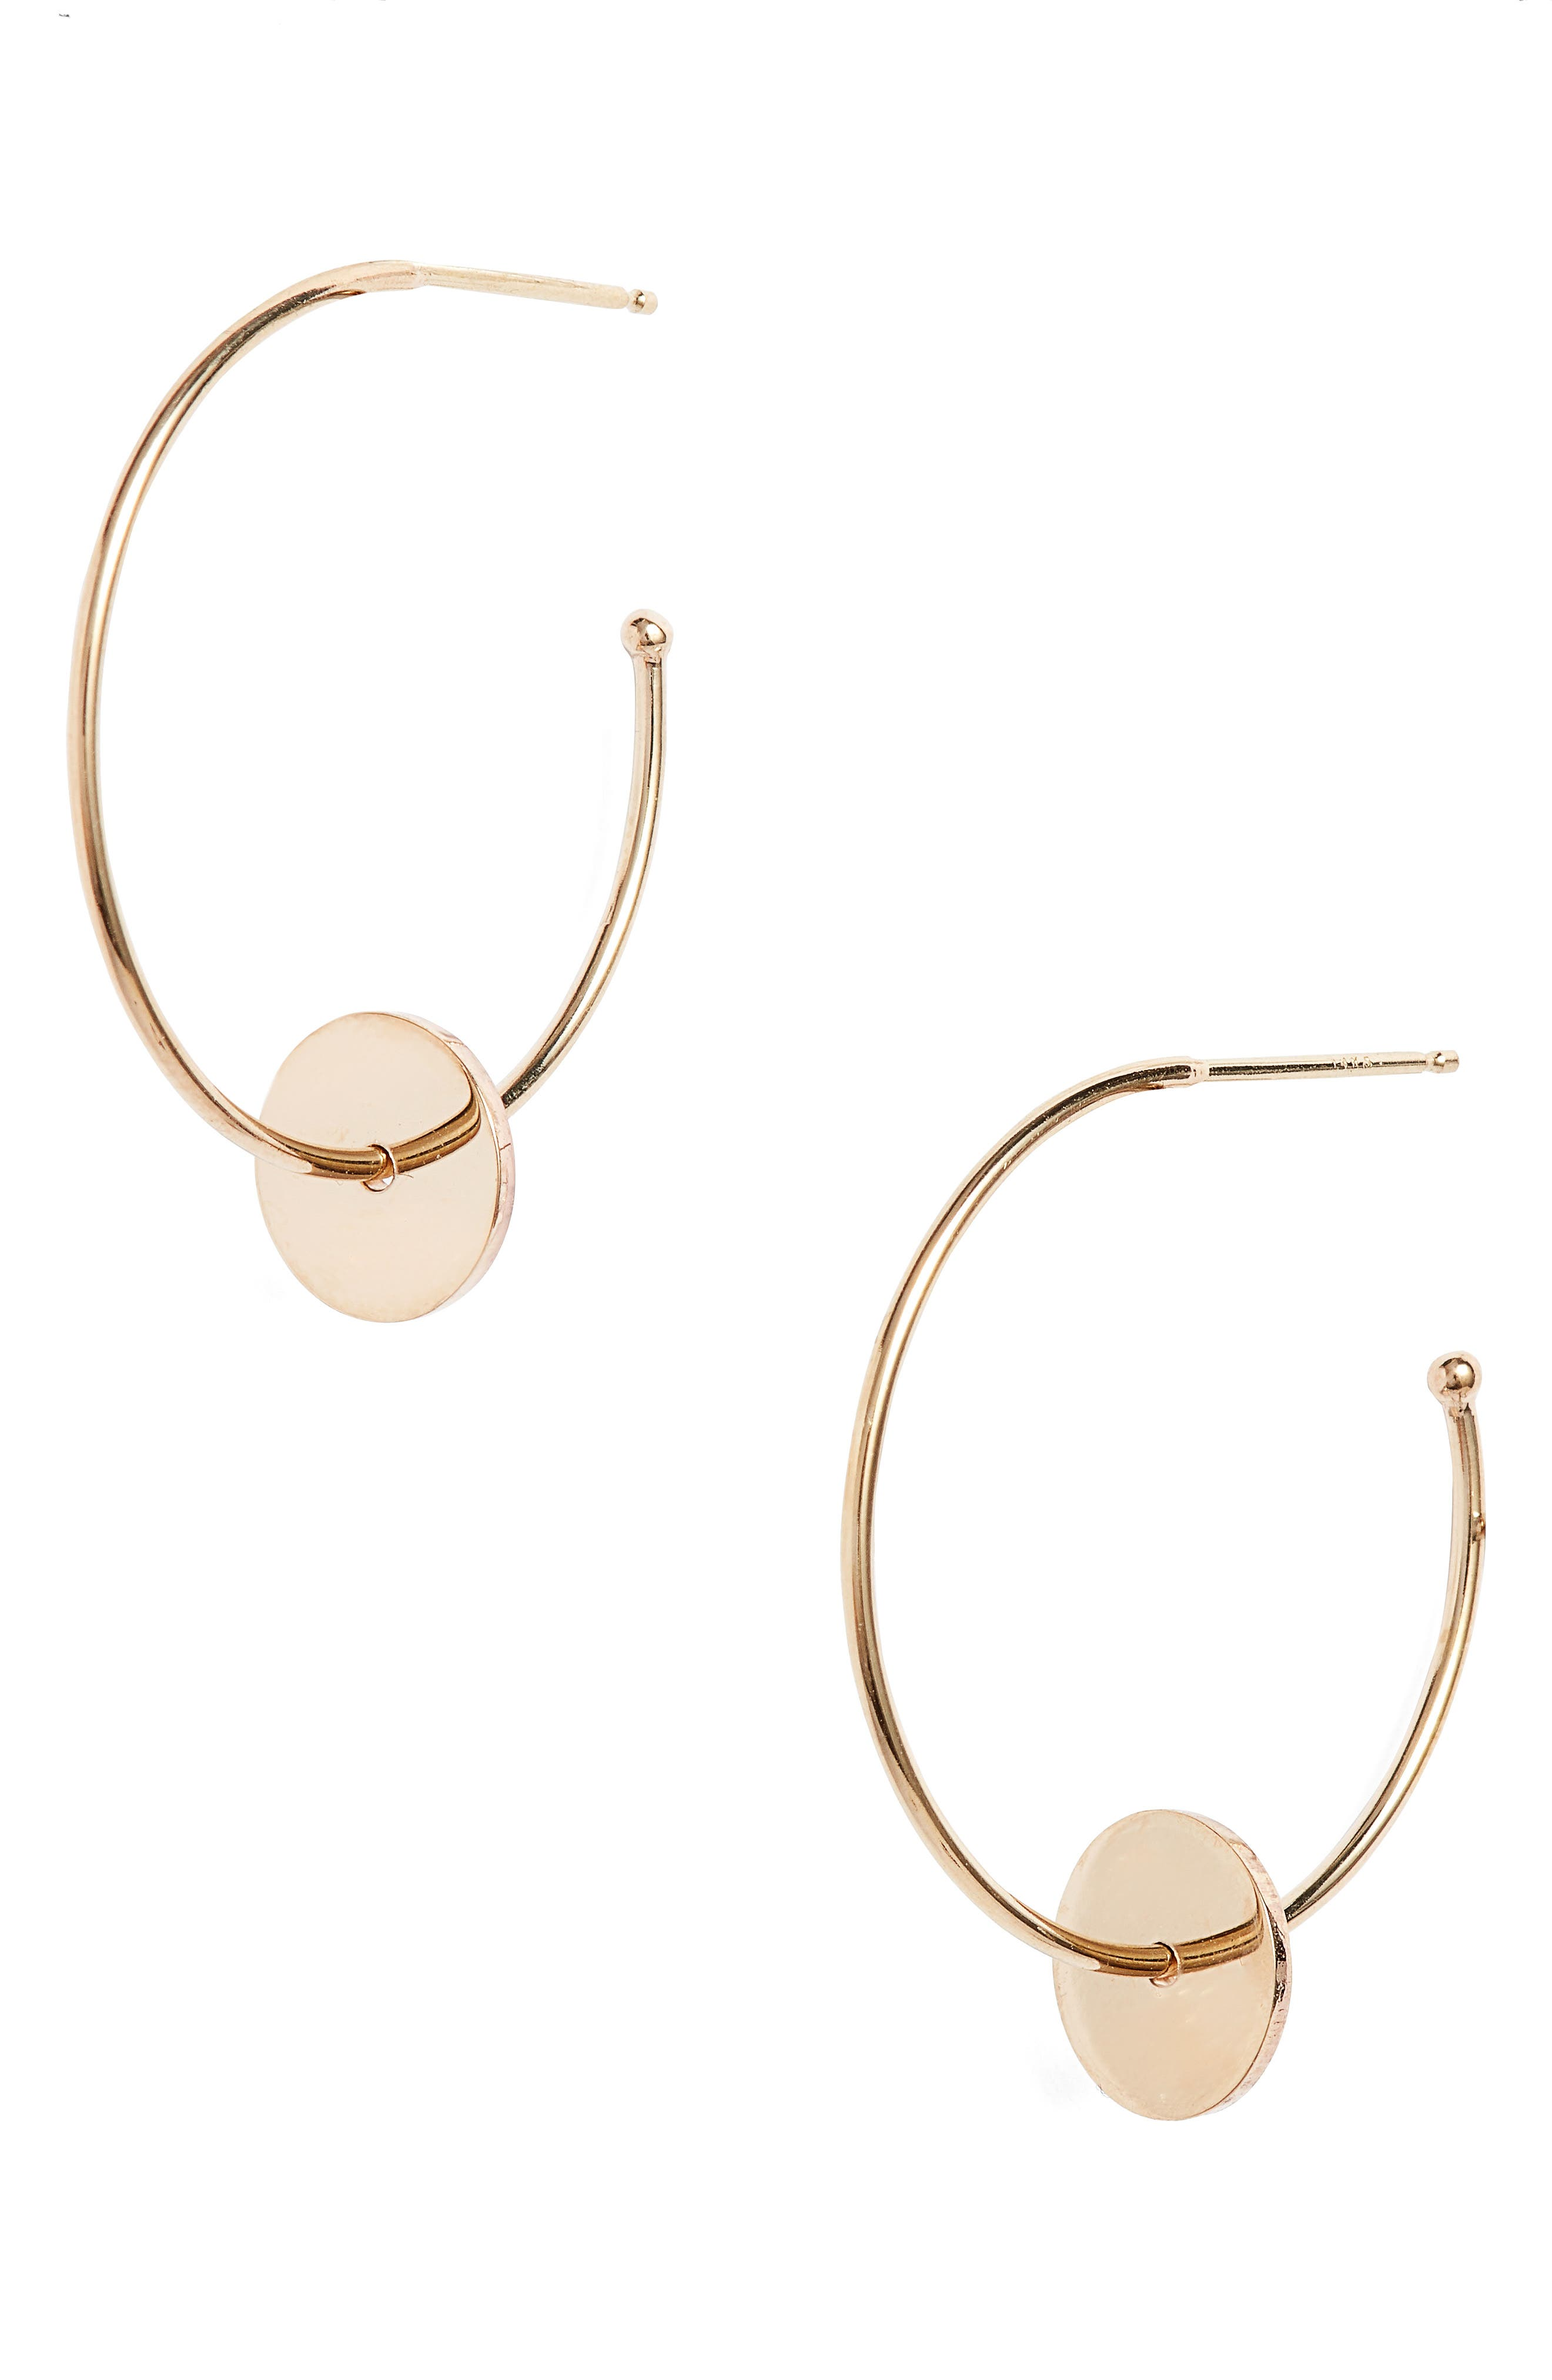 Washer Hoop Earrings,                             Main thumbnail 1, color,                             YELLOW GOLD